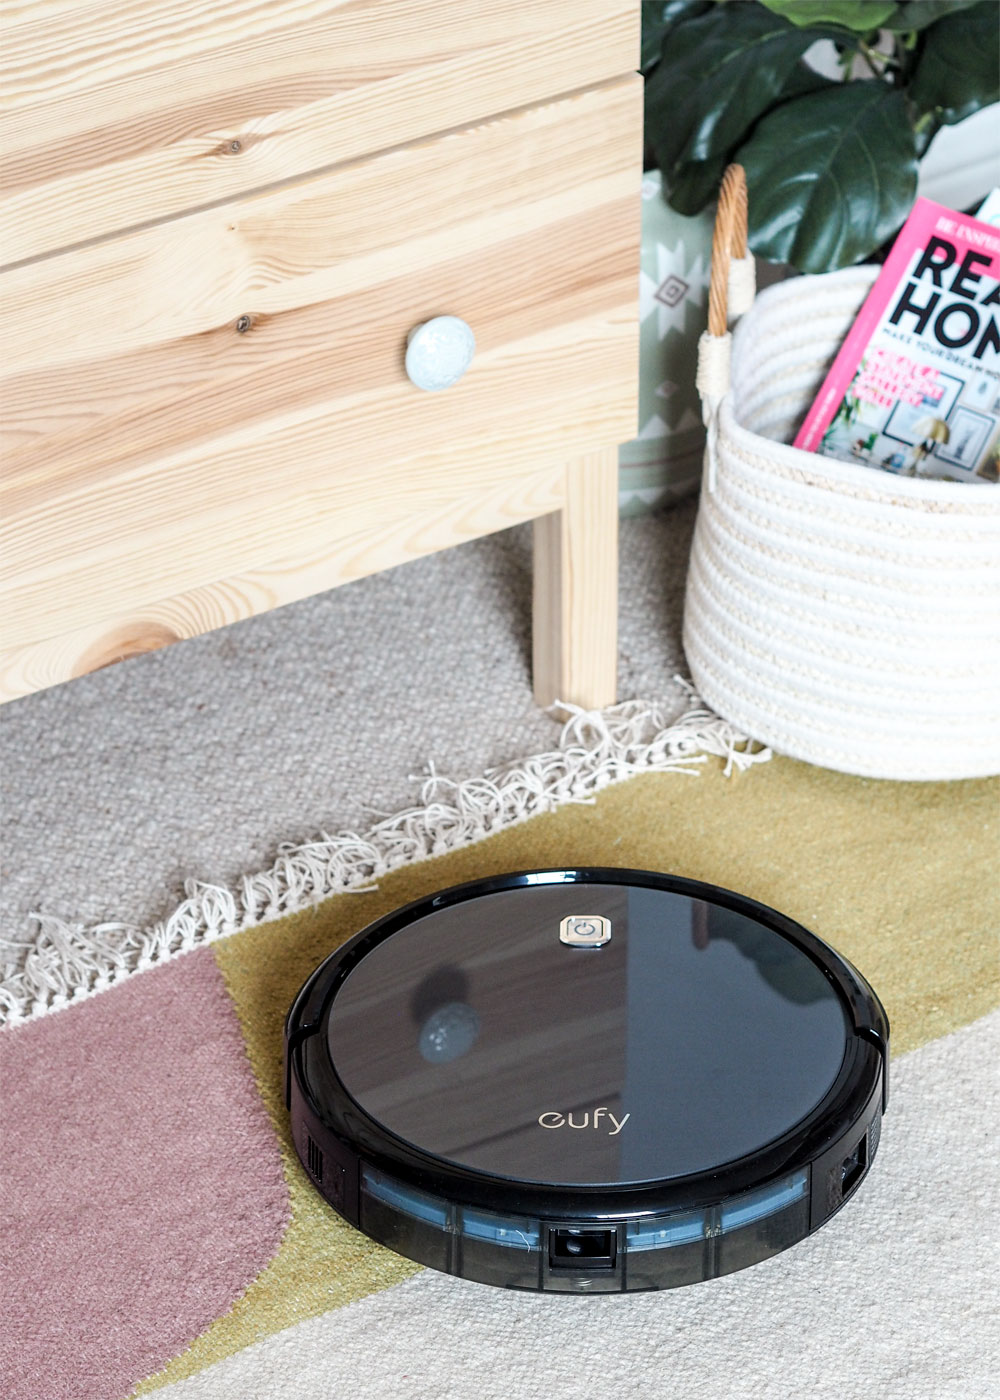 Today I'm giving my honest review of the Eufy Robovac 11 vacuum, sharing if this robot vacuum really is worth all the hype.